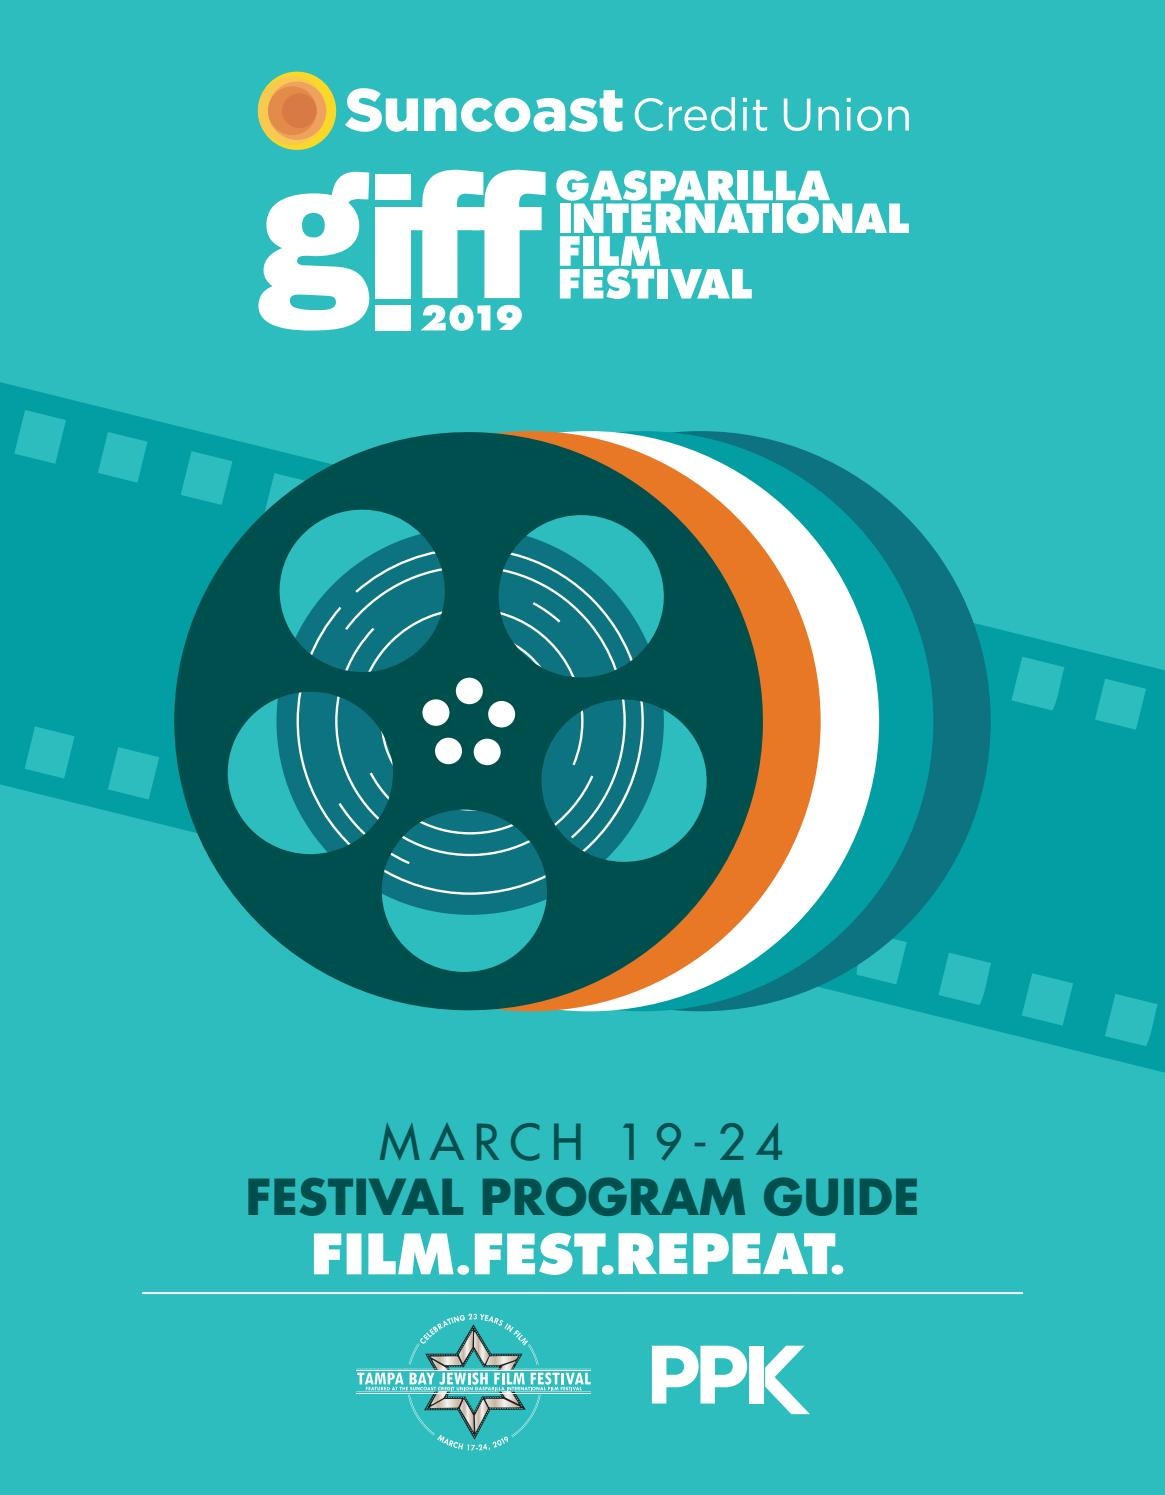 Suncoast Credit Union Customer Service >> 2019 Suncoast Credit Union Gasparilla Int L Film Festival